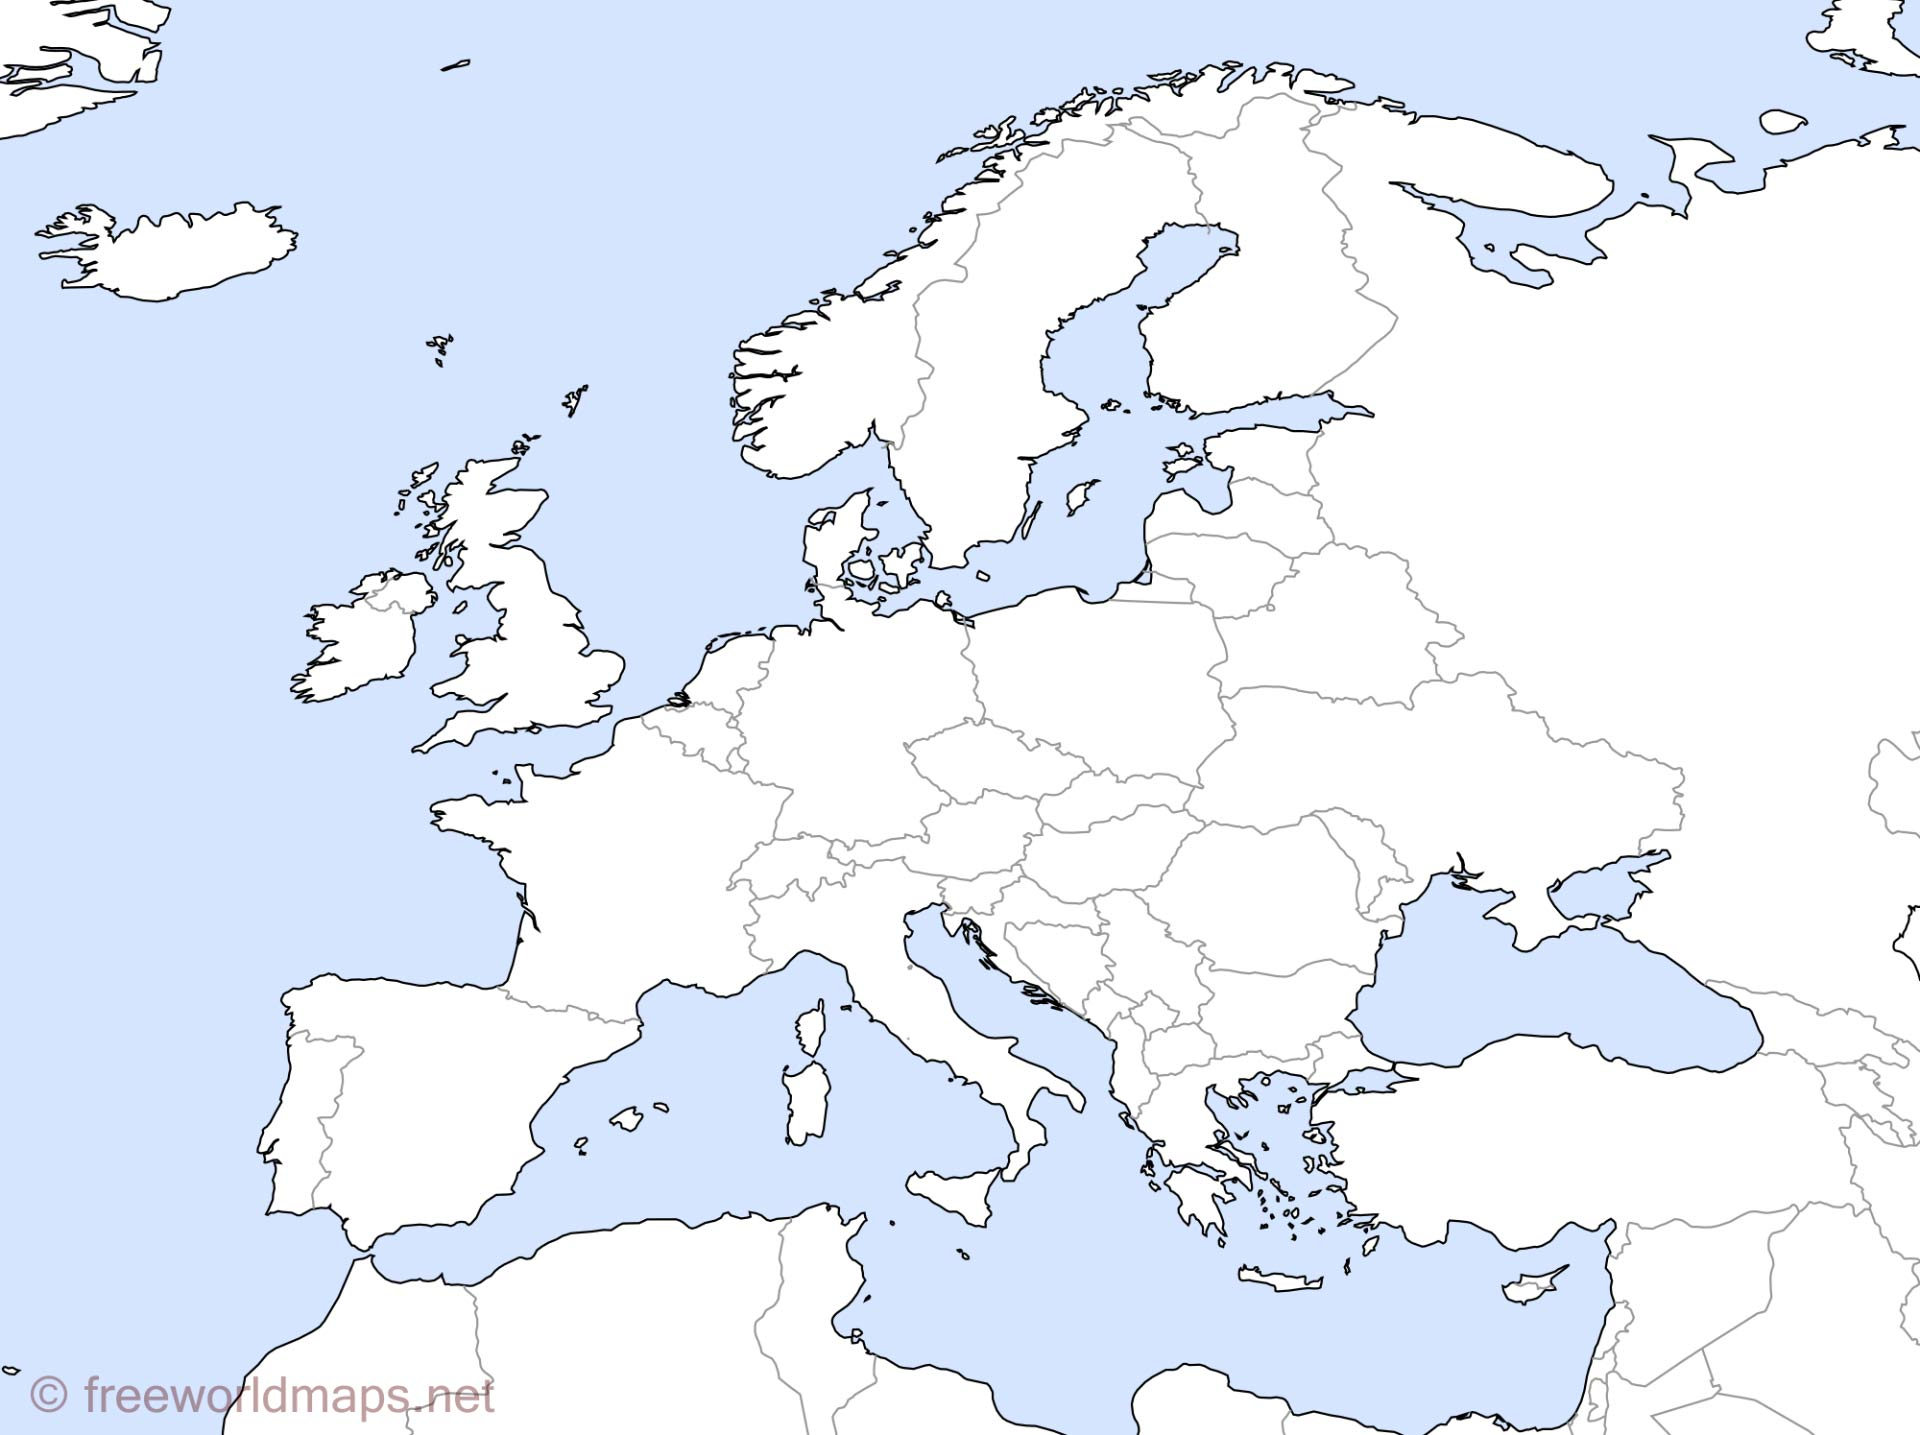 It is an image of Slobbery Printable Map of Europe